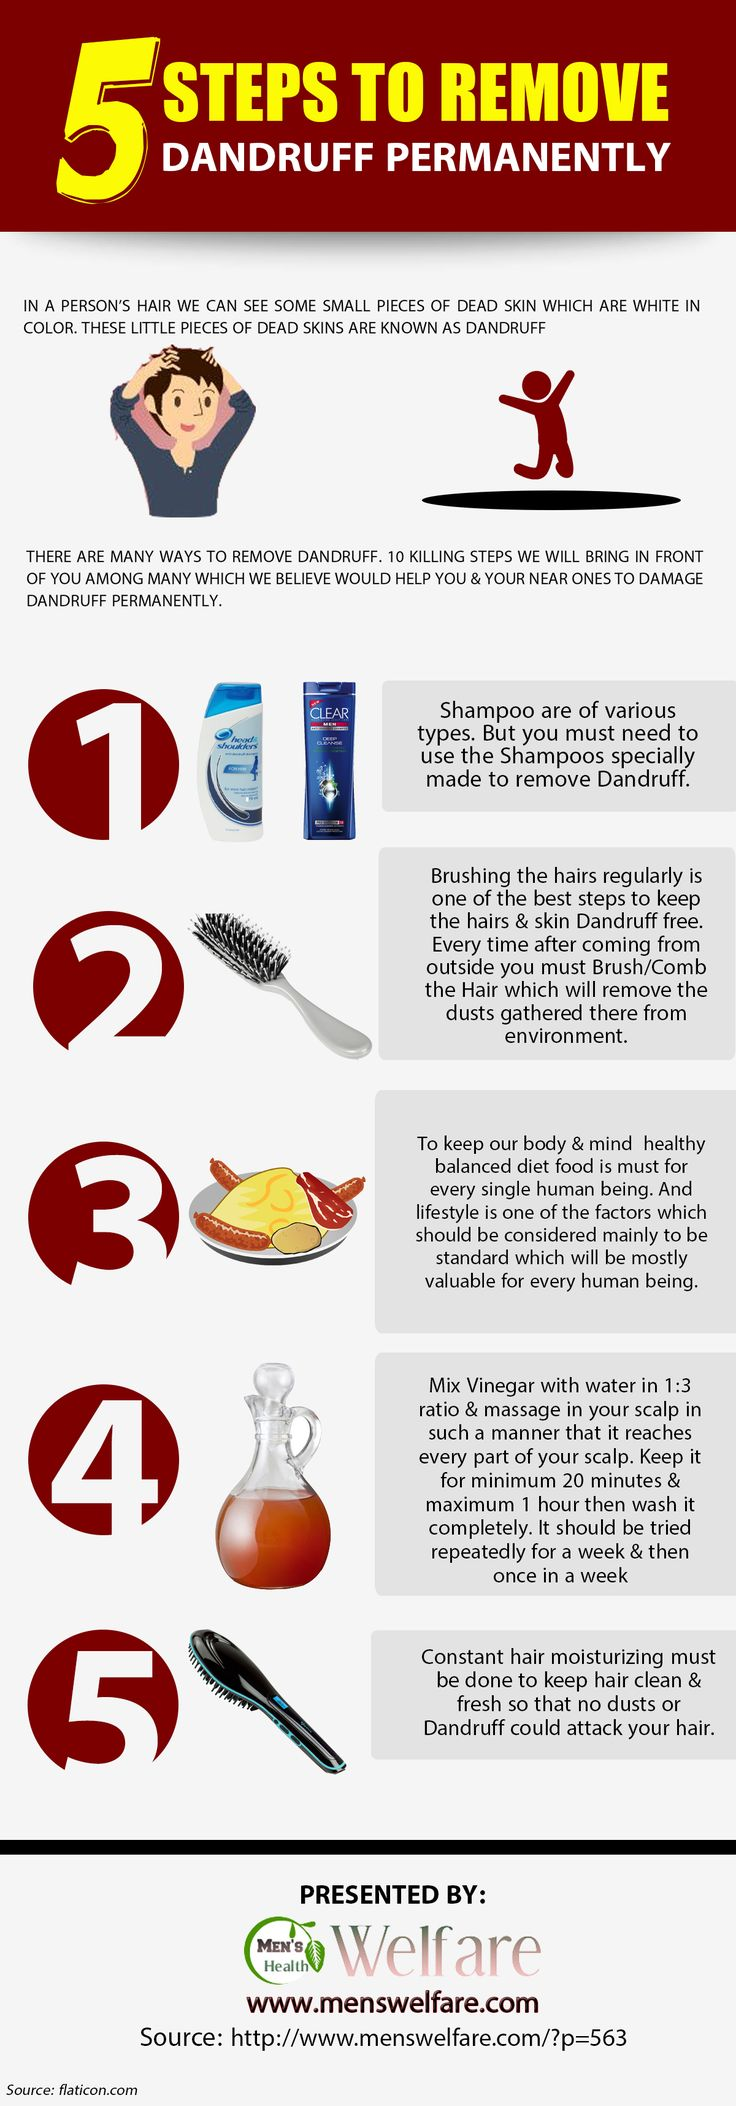 how to fix dandruff permantly